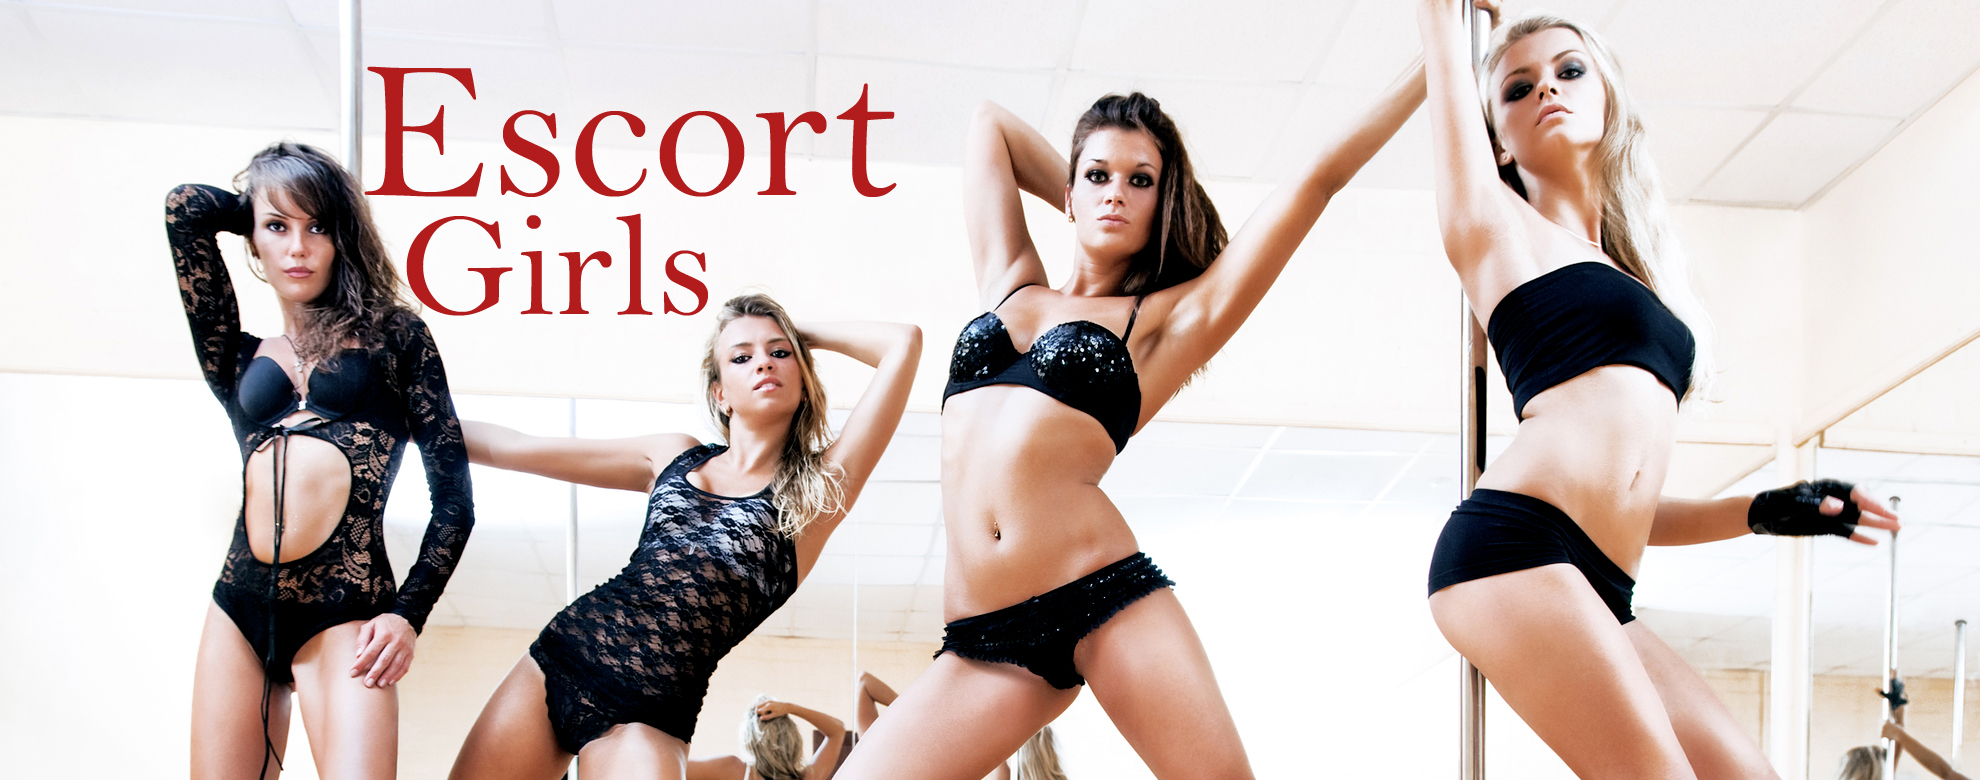 footjobs escort girls nrw